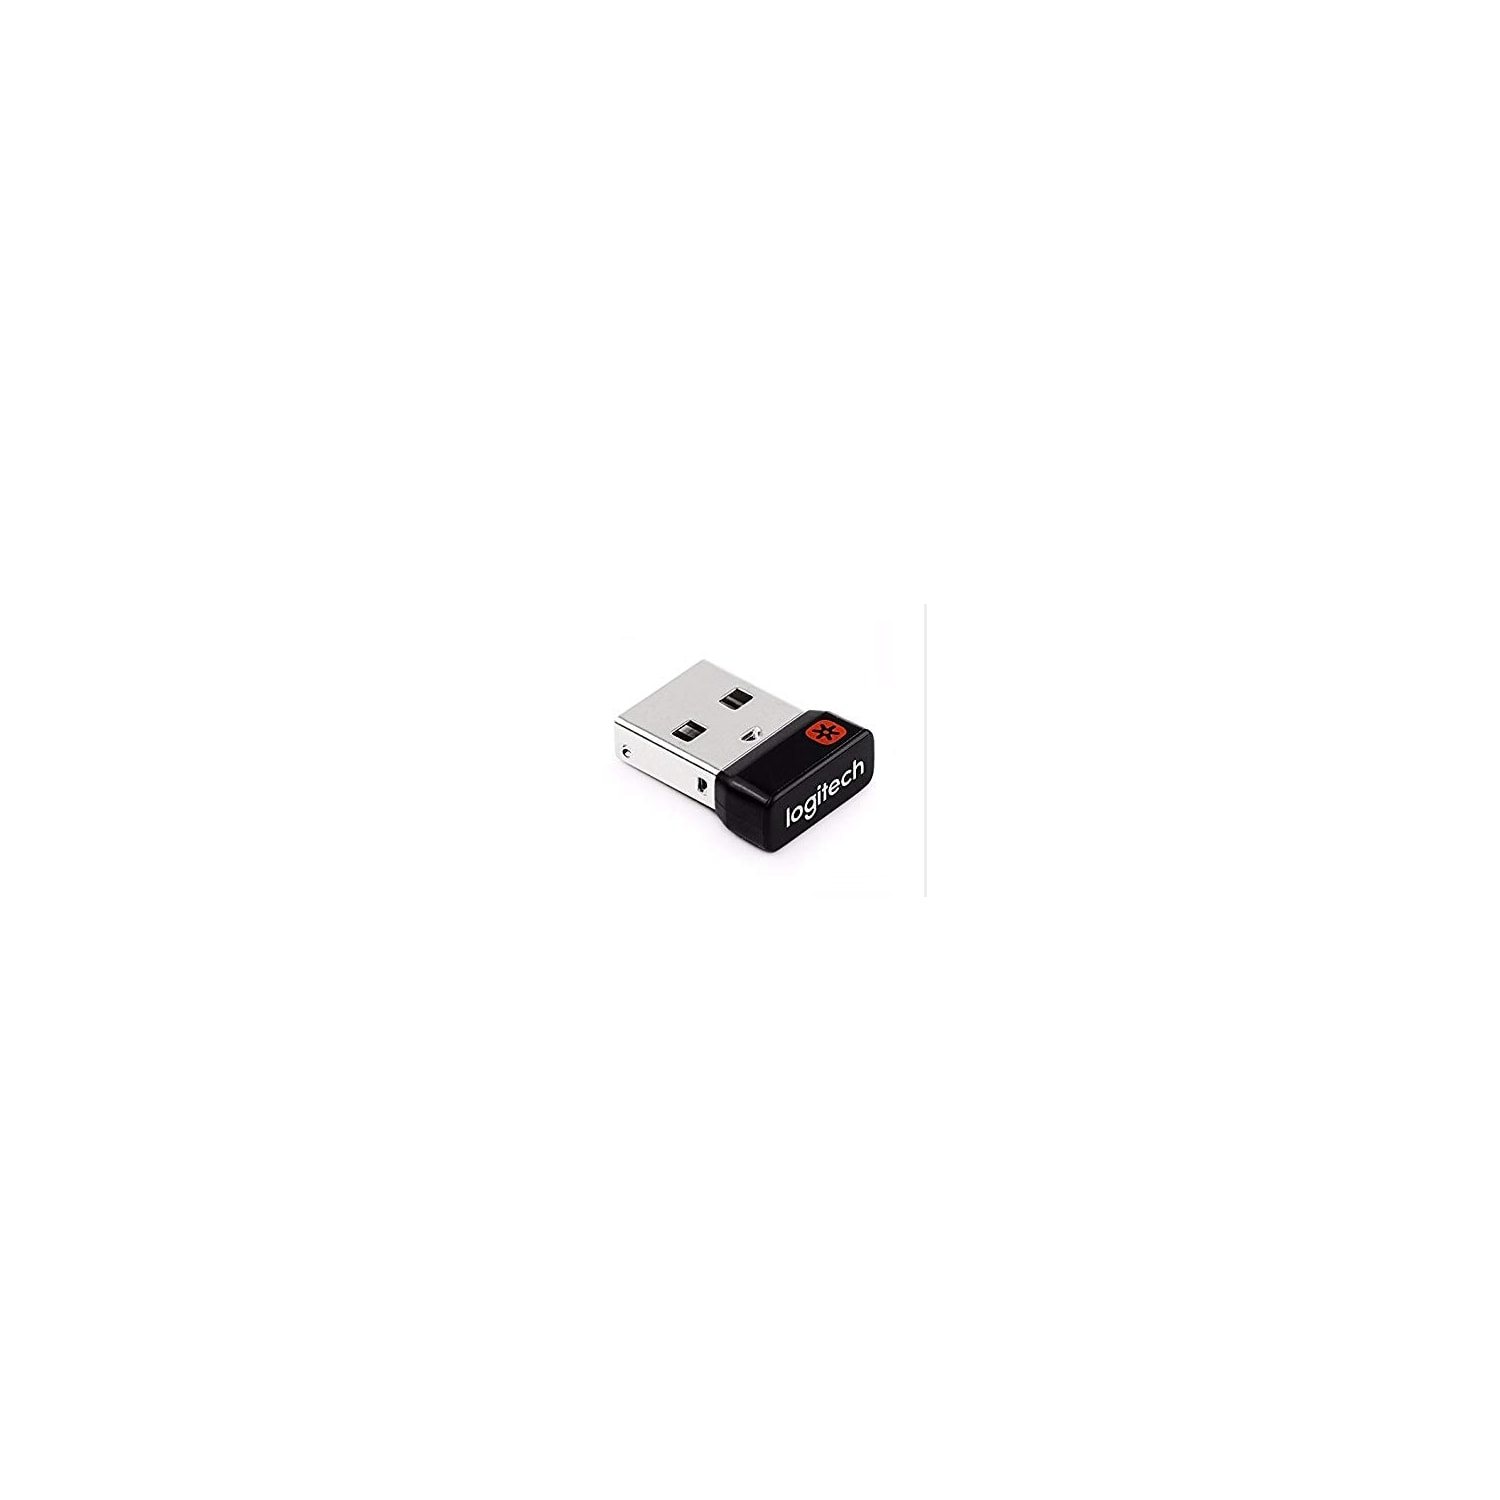 Logitech C-U0007 Unifying Receiver For Mouse And Keyboards